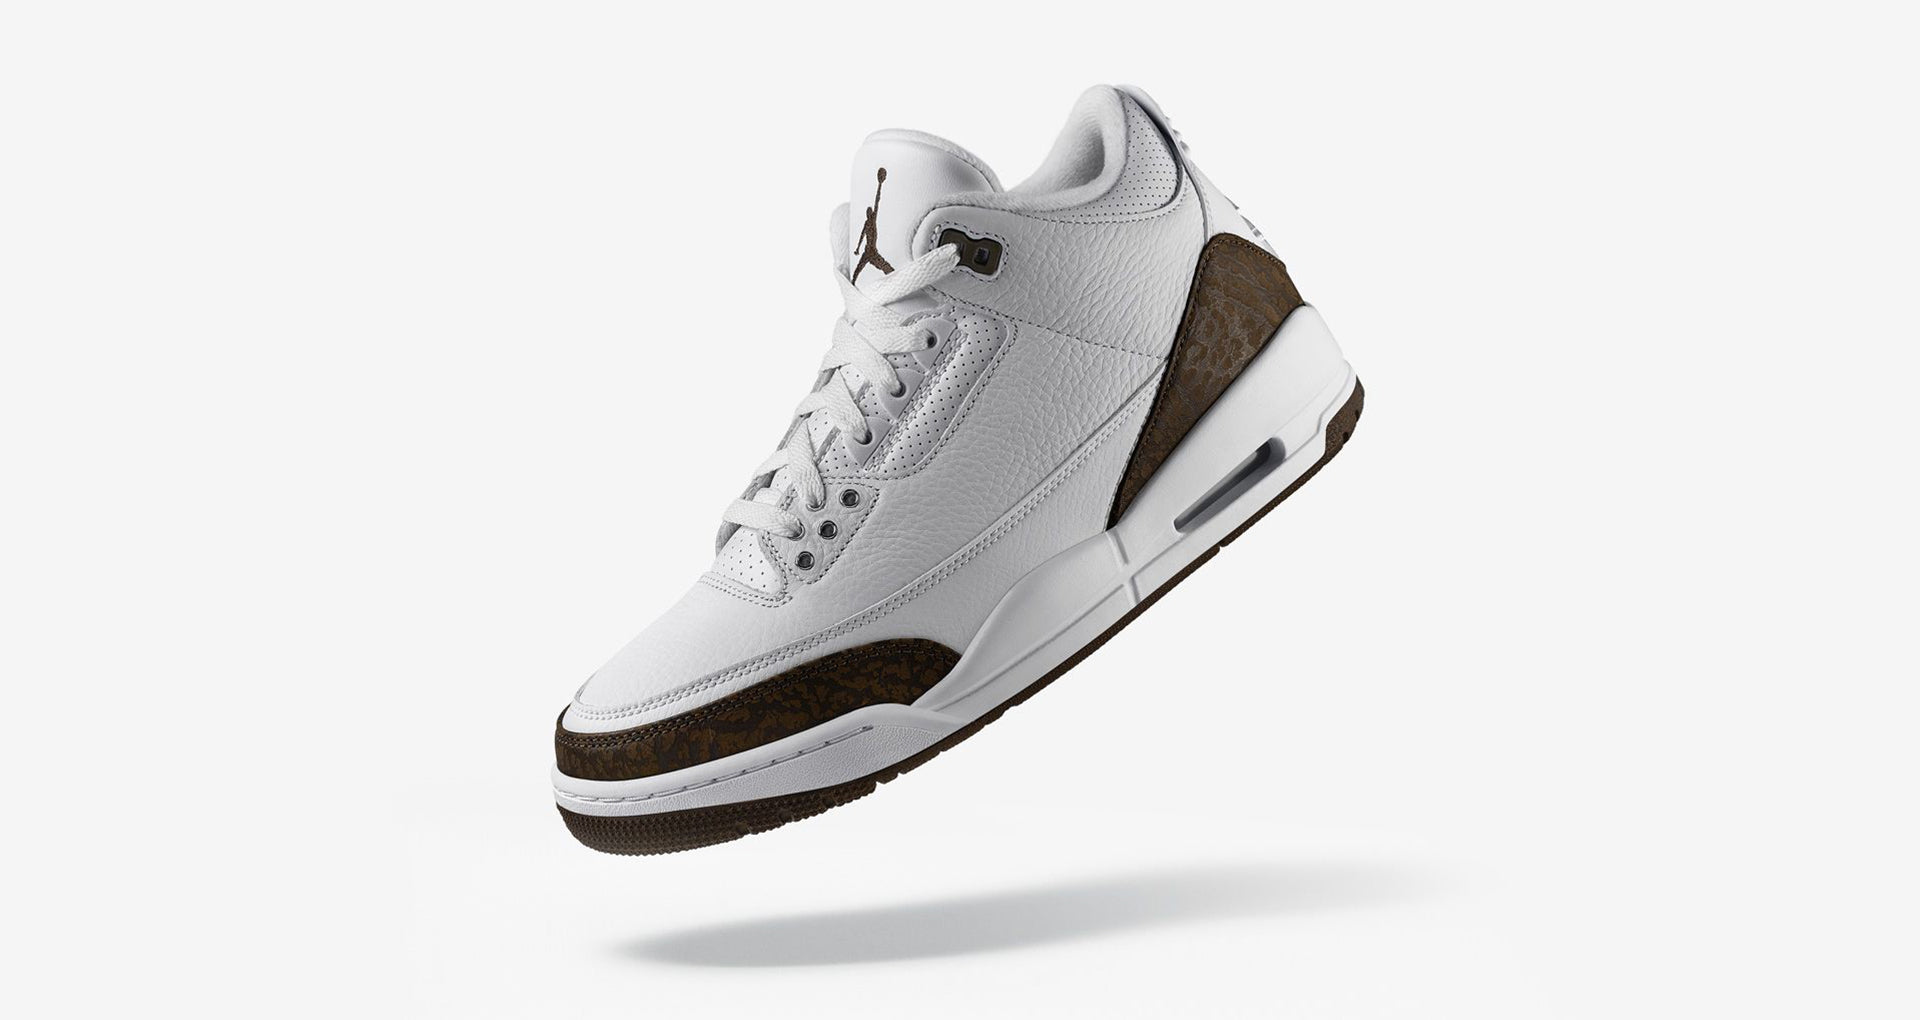 6fa1fe40f Air Jordan 3 Online Release Nike Deliver Shox Gray And Orange Shoes ...